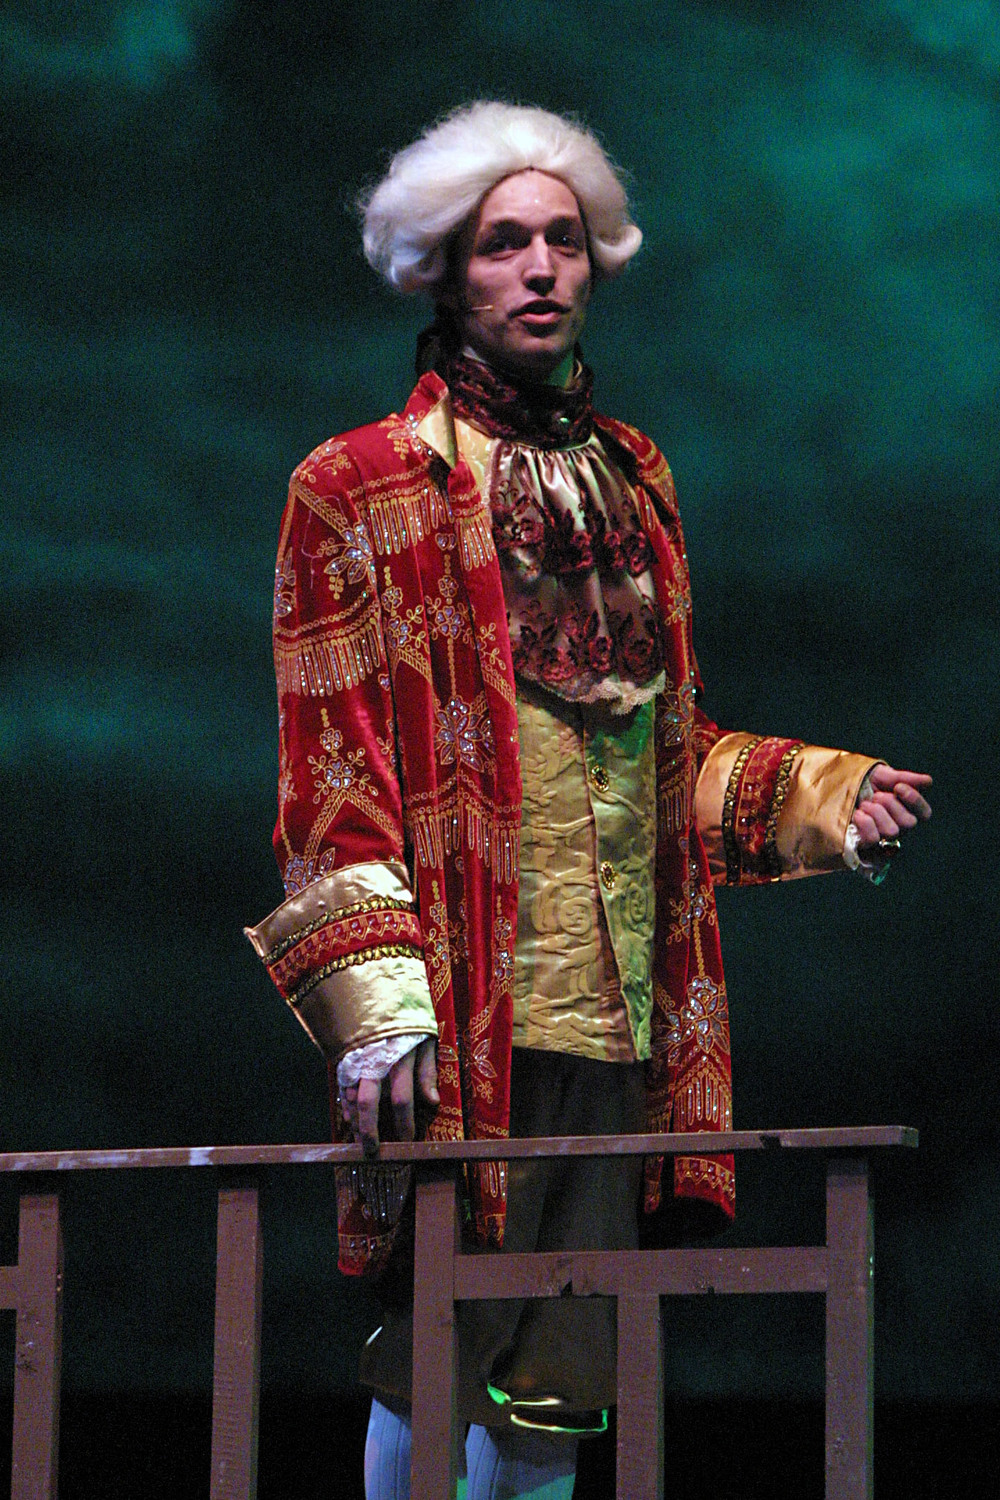 041 - The Scarlet Pimpernel 2005 - Generale.jpg